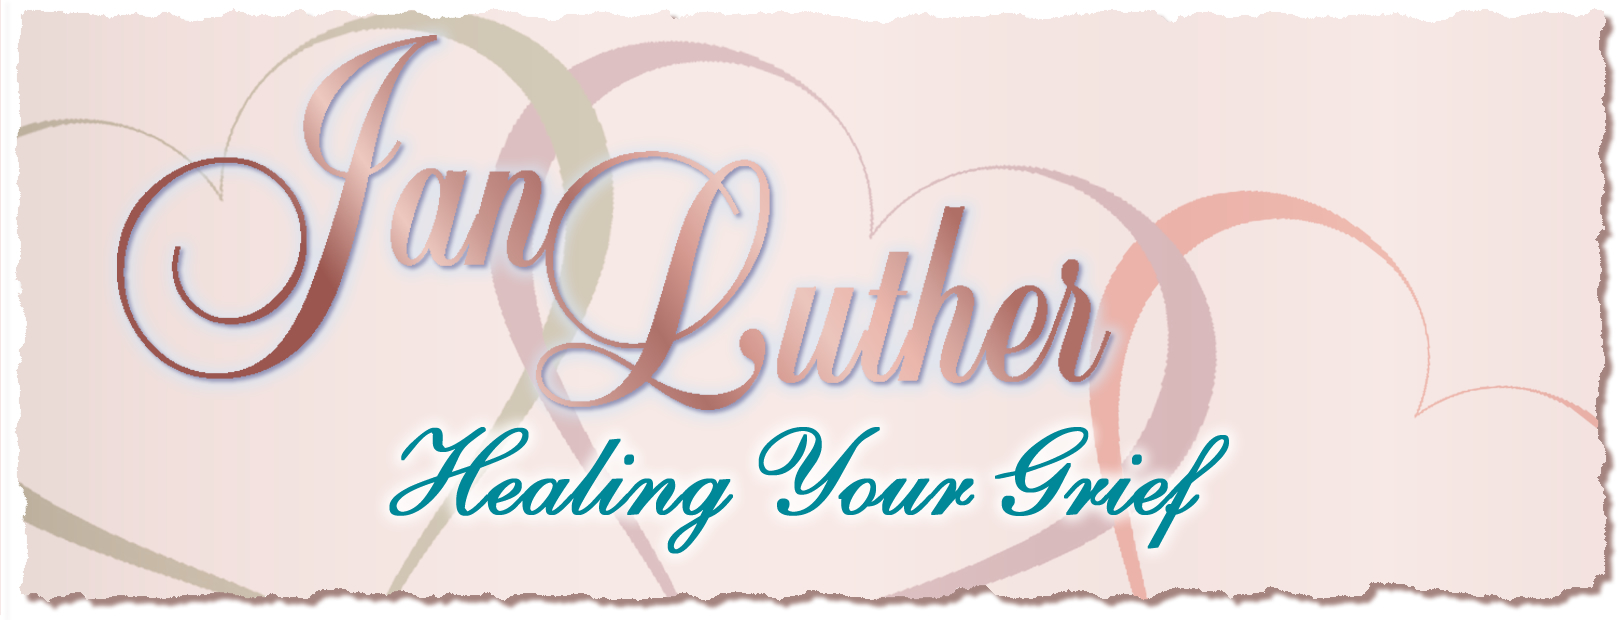 Jan Luther's Healing Your Grief